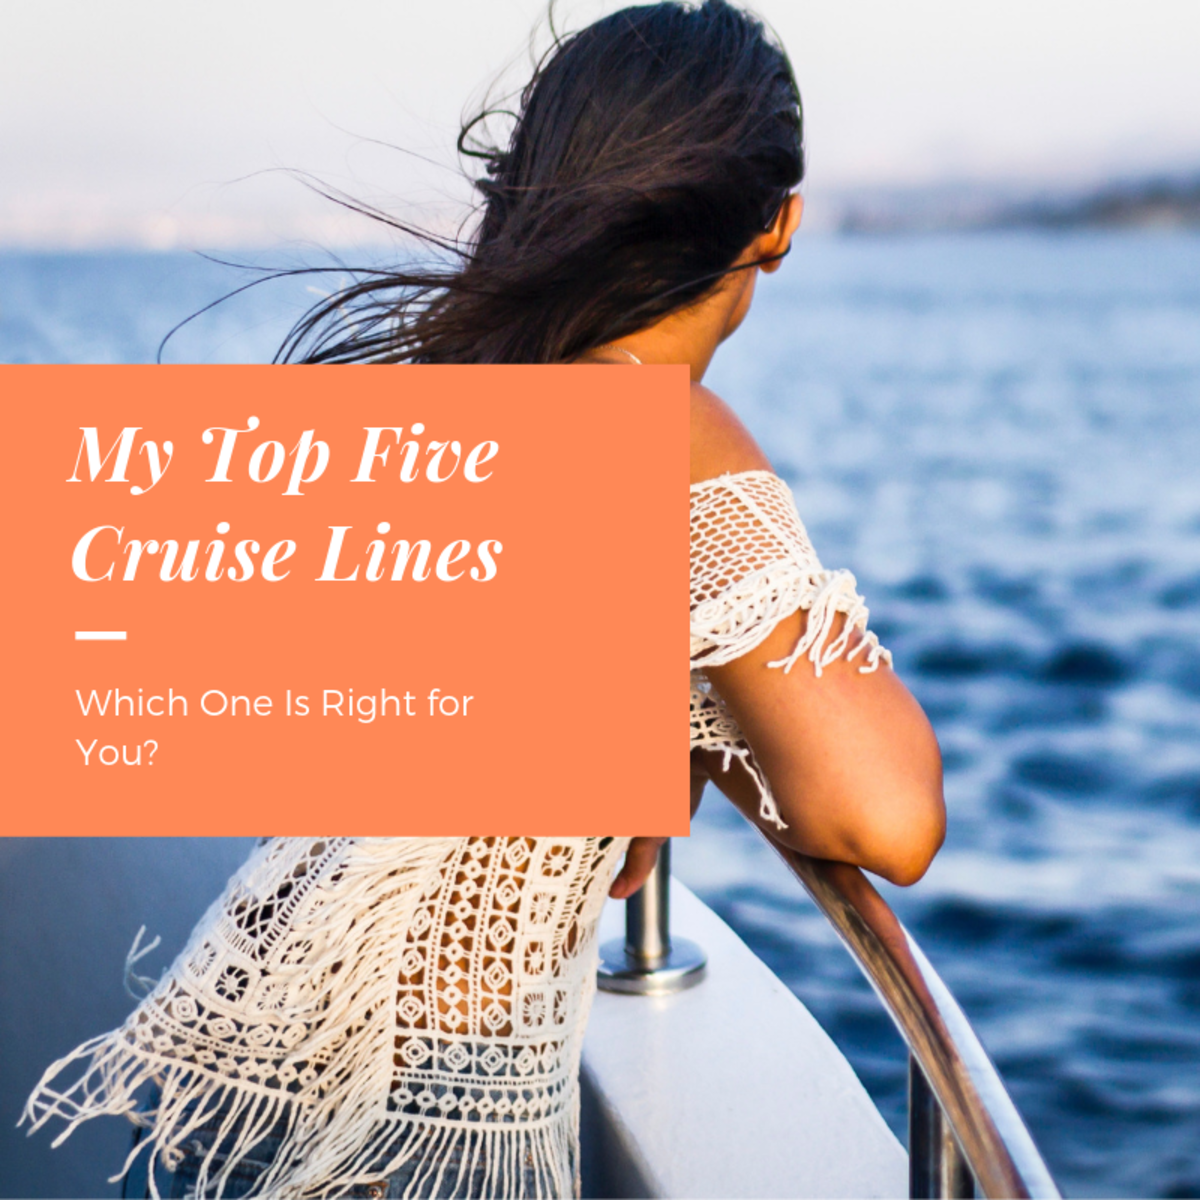 My Top Five Cruise Lines: Which One Is Right for You?